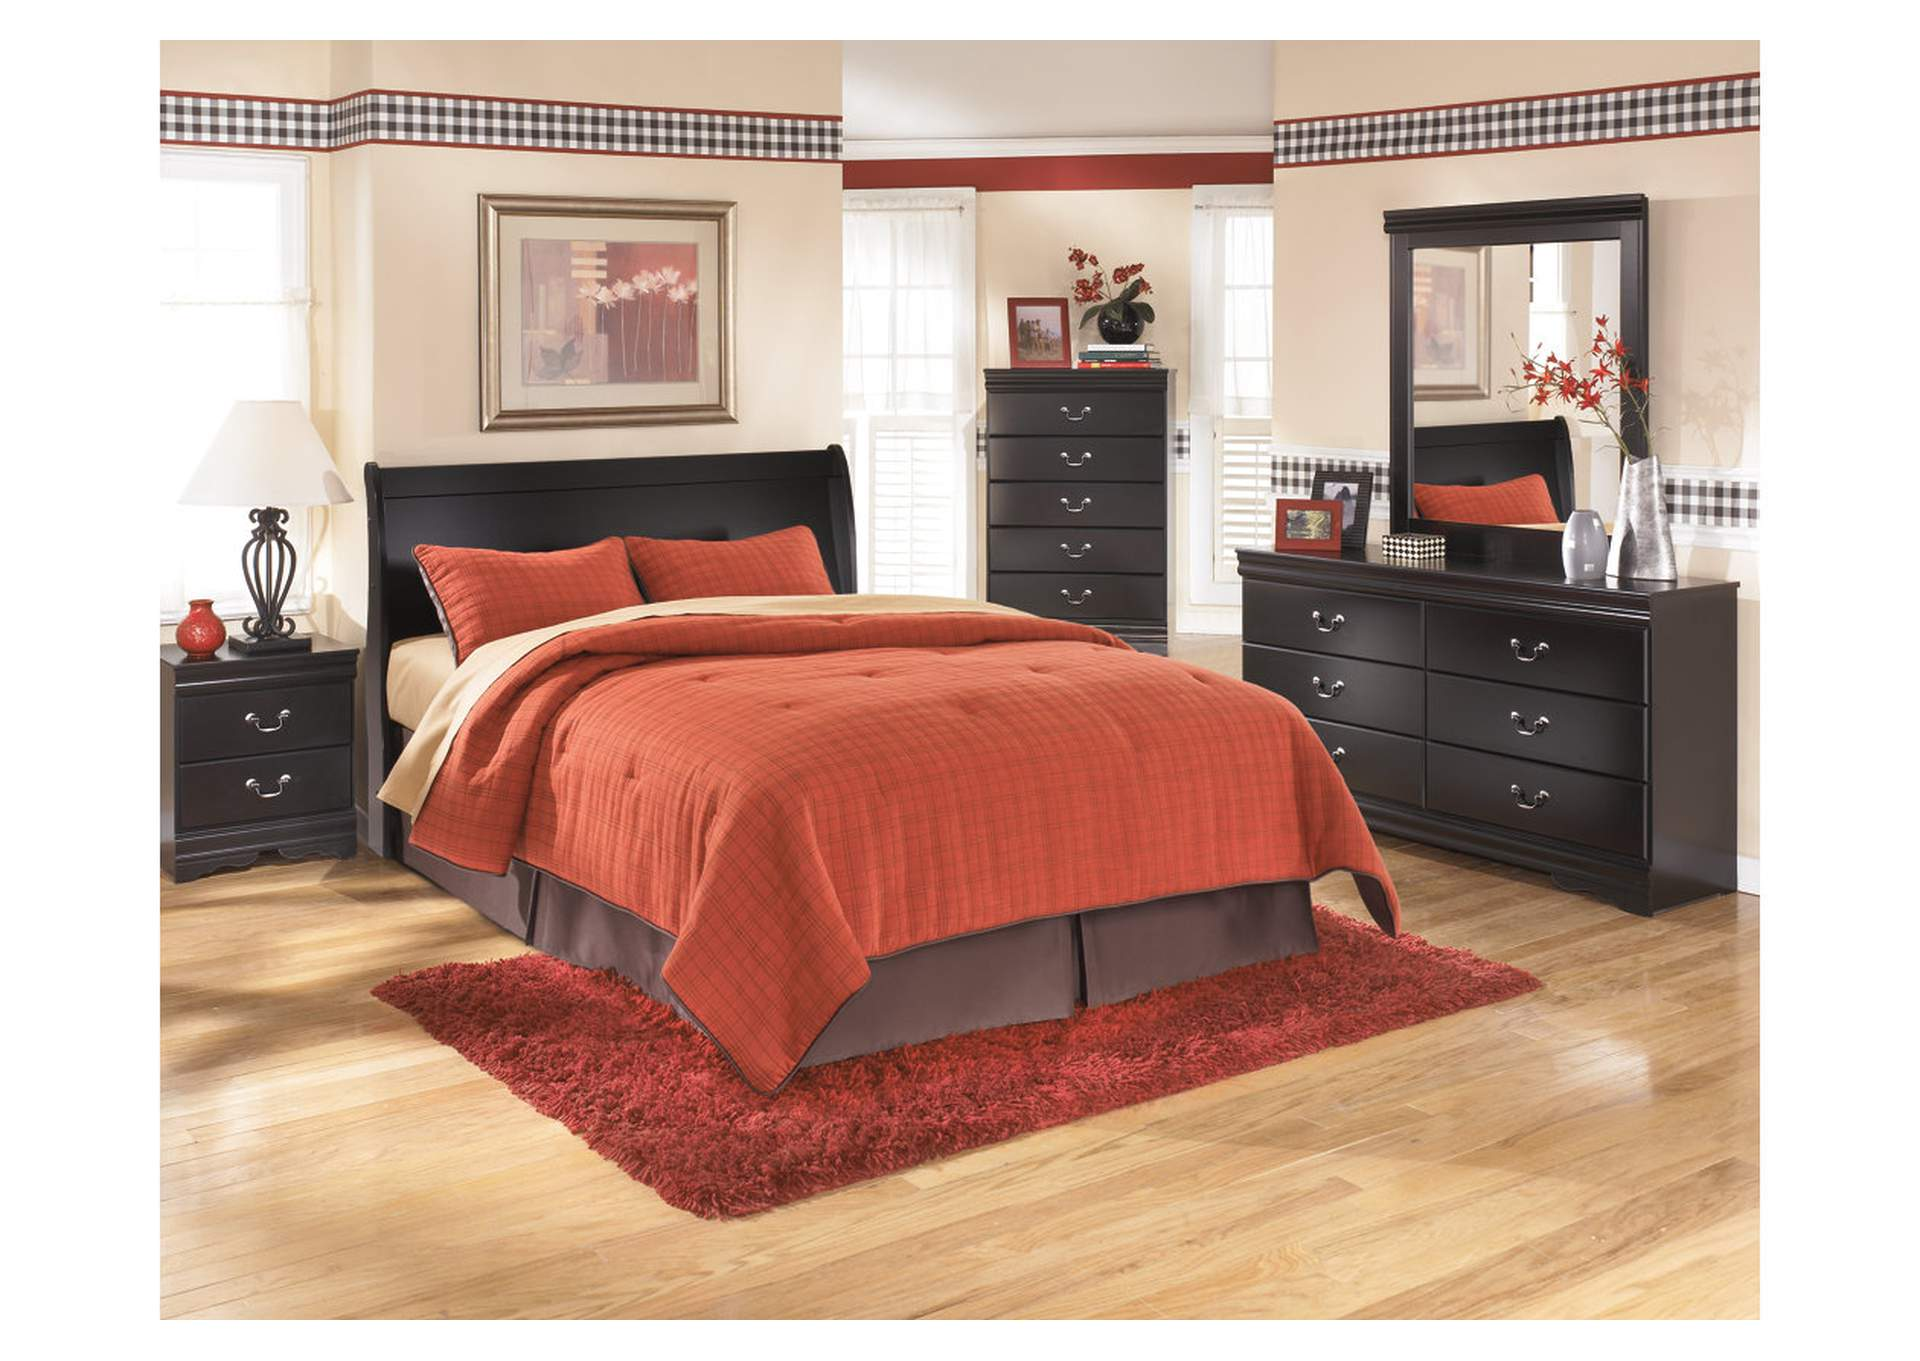 Huey Vineyard King Sleigh Headboard, Dresser, Mirror & Night Stand,Signature Design By Ashley